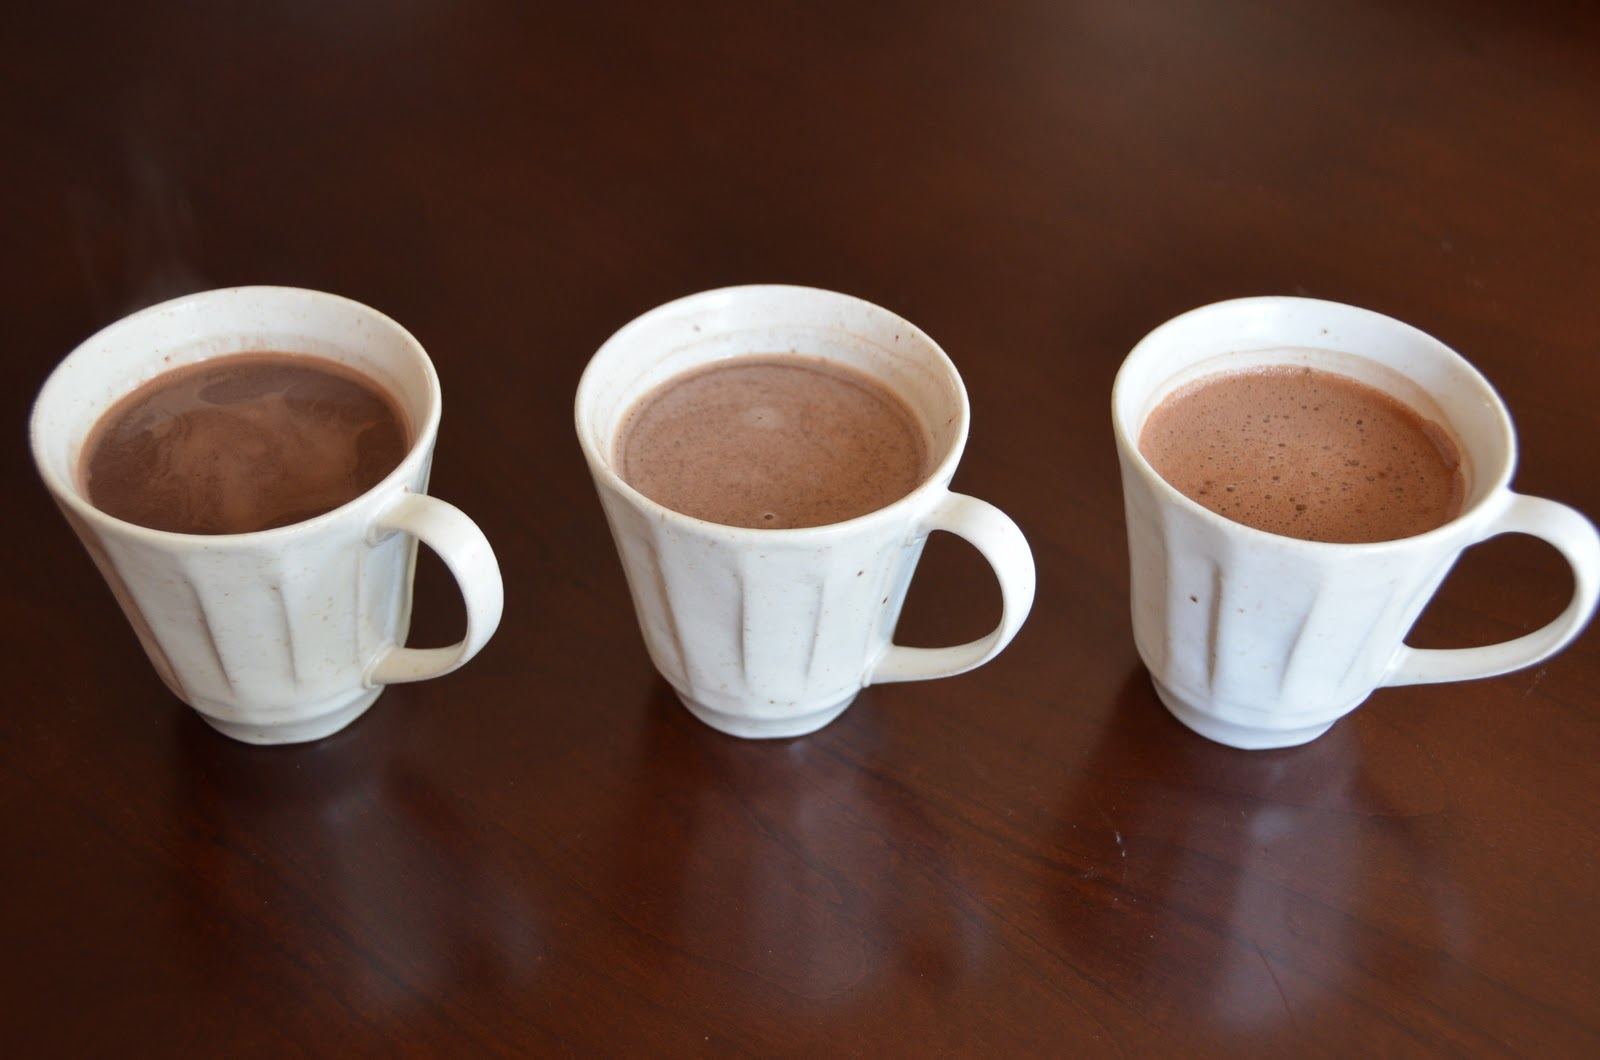 How To Make Hot Chocolate With Unsweetened Cocoa